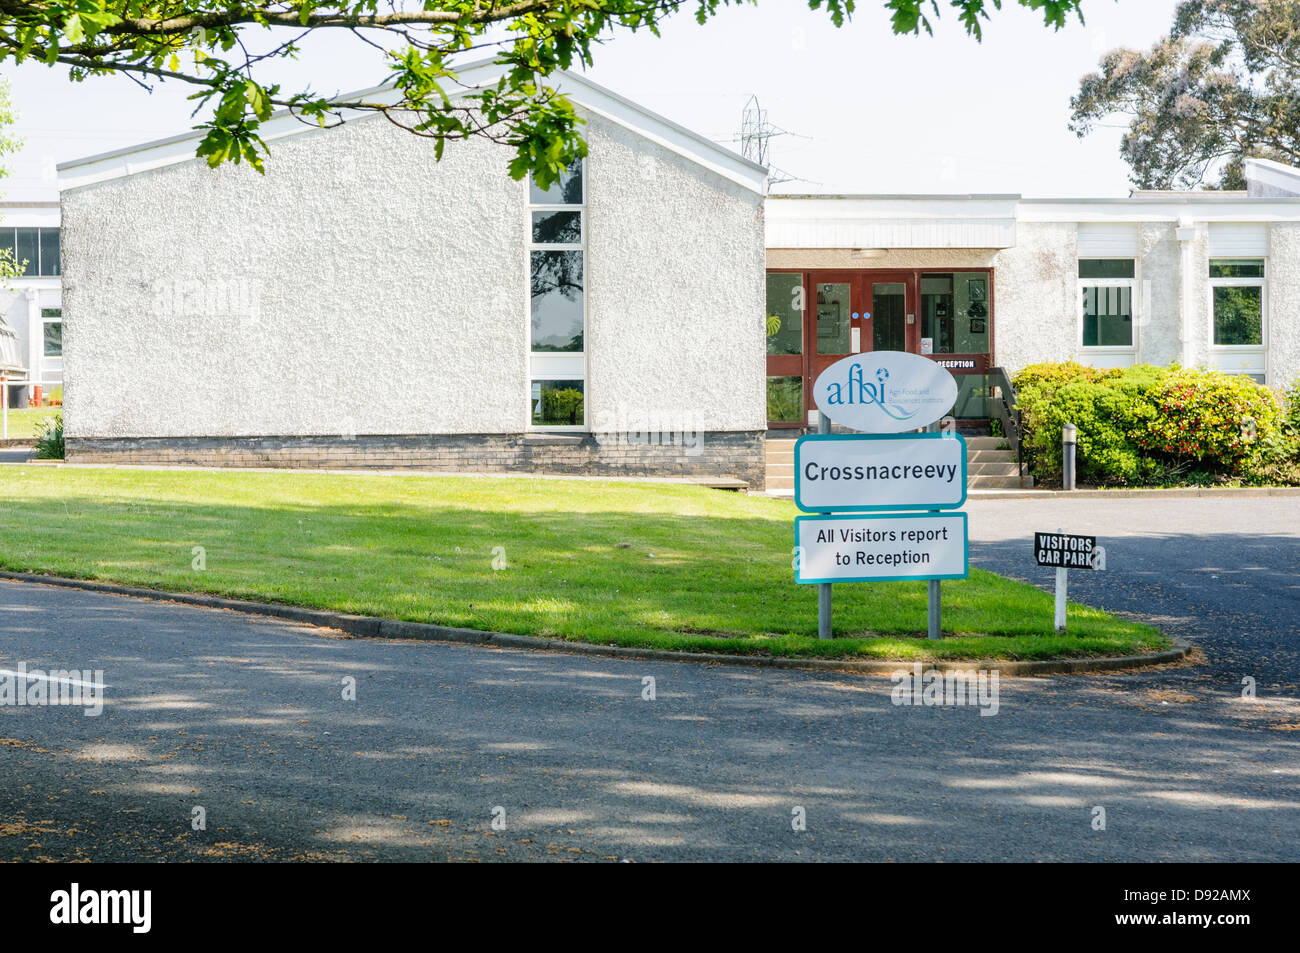 Department of Agriculture Northern Ireland Plant testing facility at Crossnacreevy - Stock Image